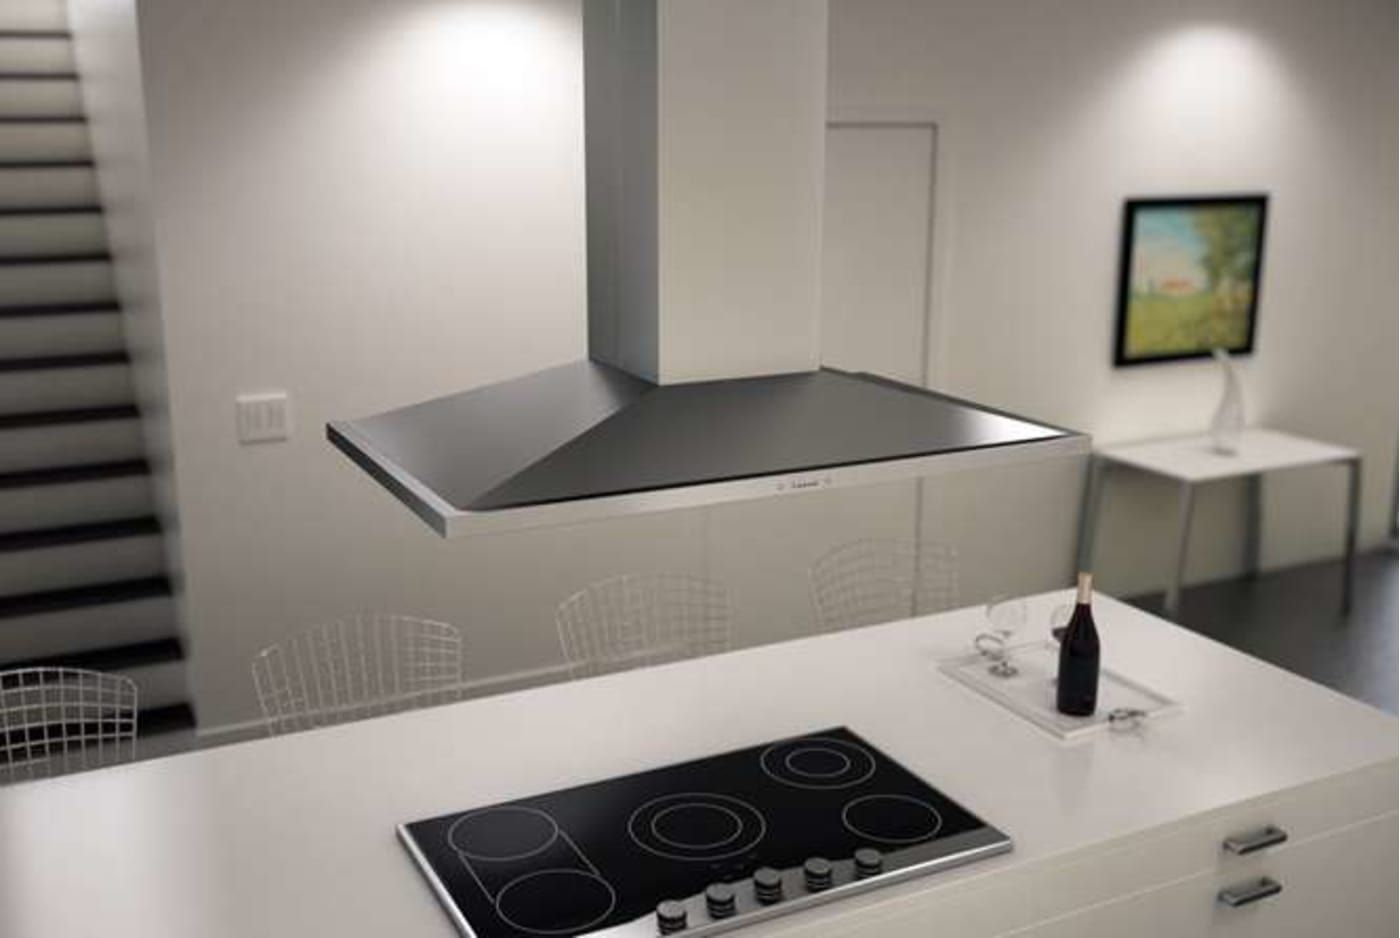 Zazm90cs By Zephyr Ventilation Goedekers Com With Images Range Hood Stainless Range Hood Kitchen Fittings